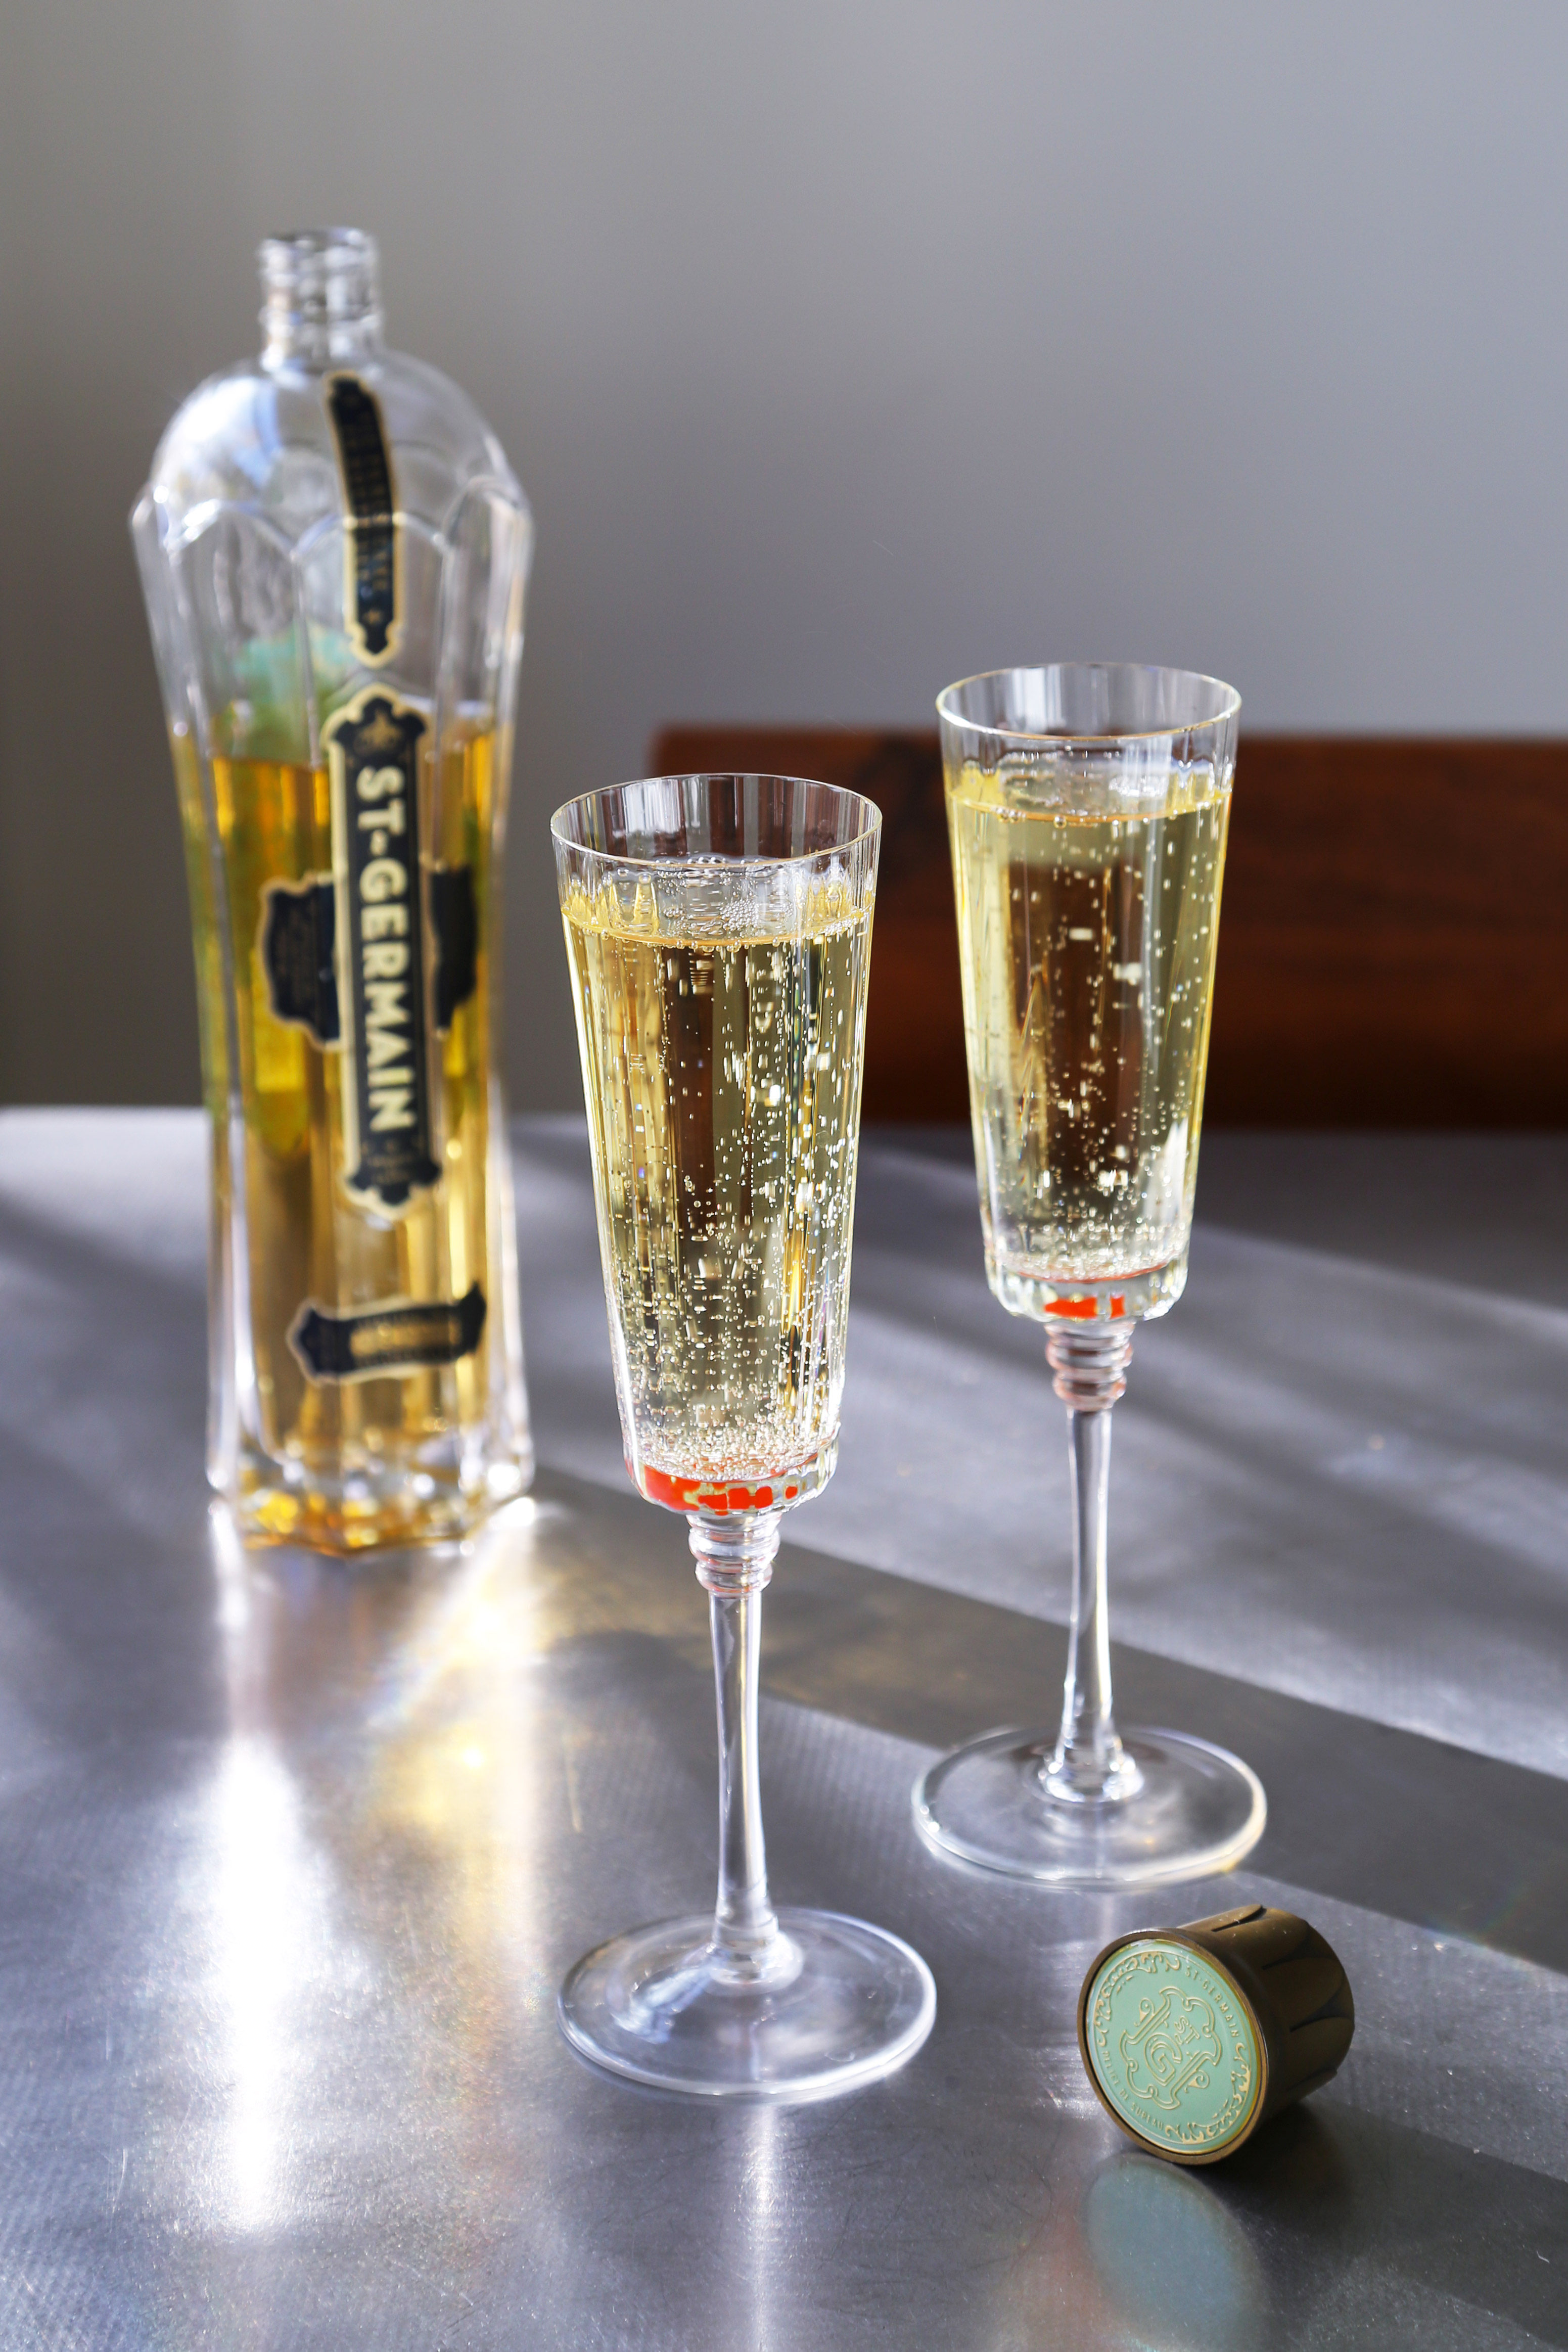 St. Germain and Champagne | Elderflower Liqueur Recipes And Cocktails For Spring And Summer